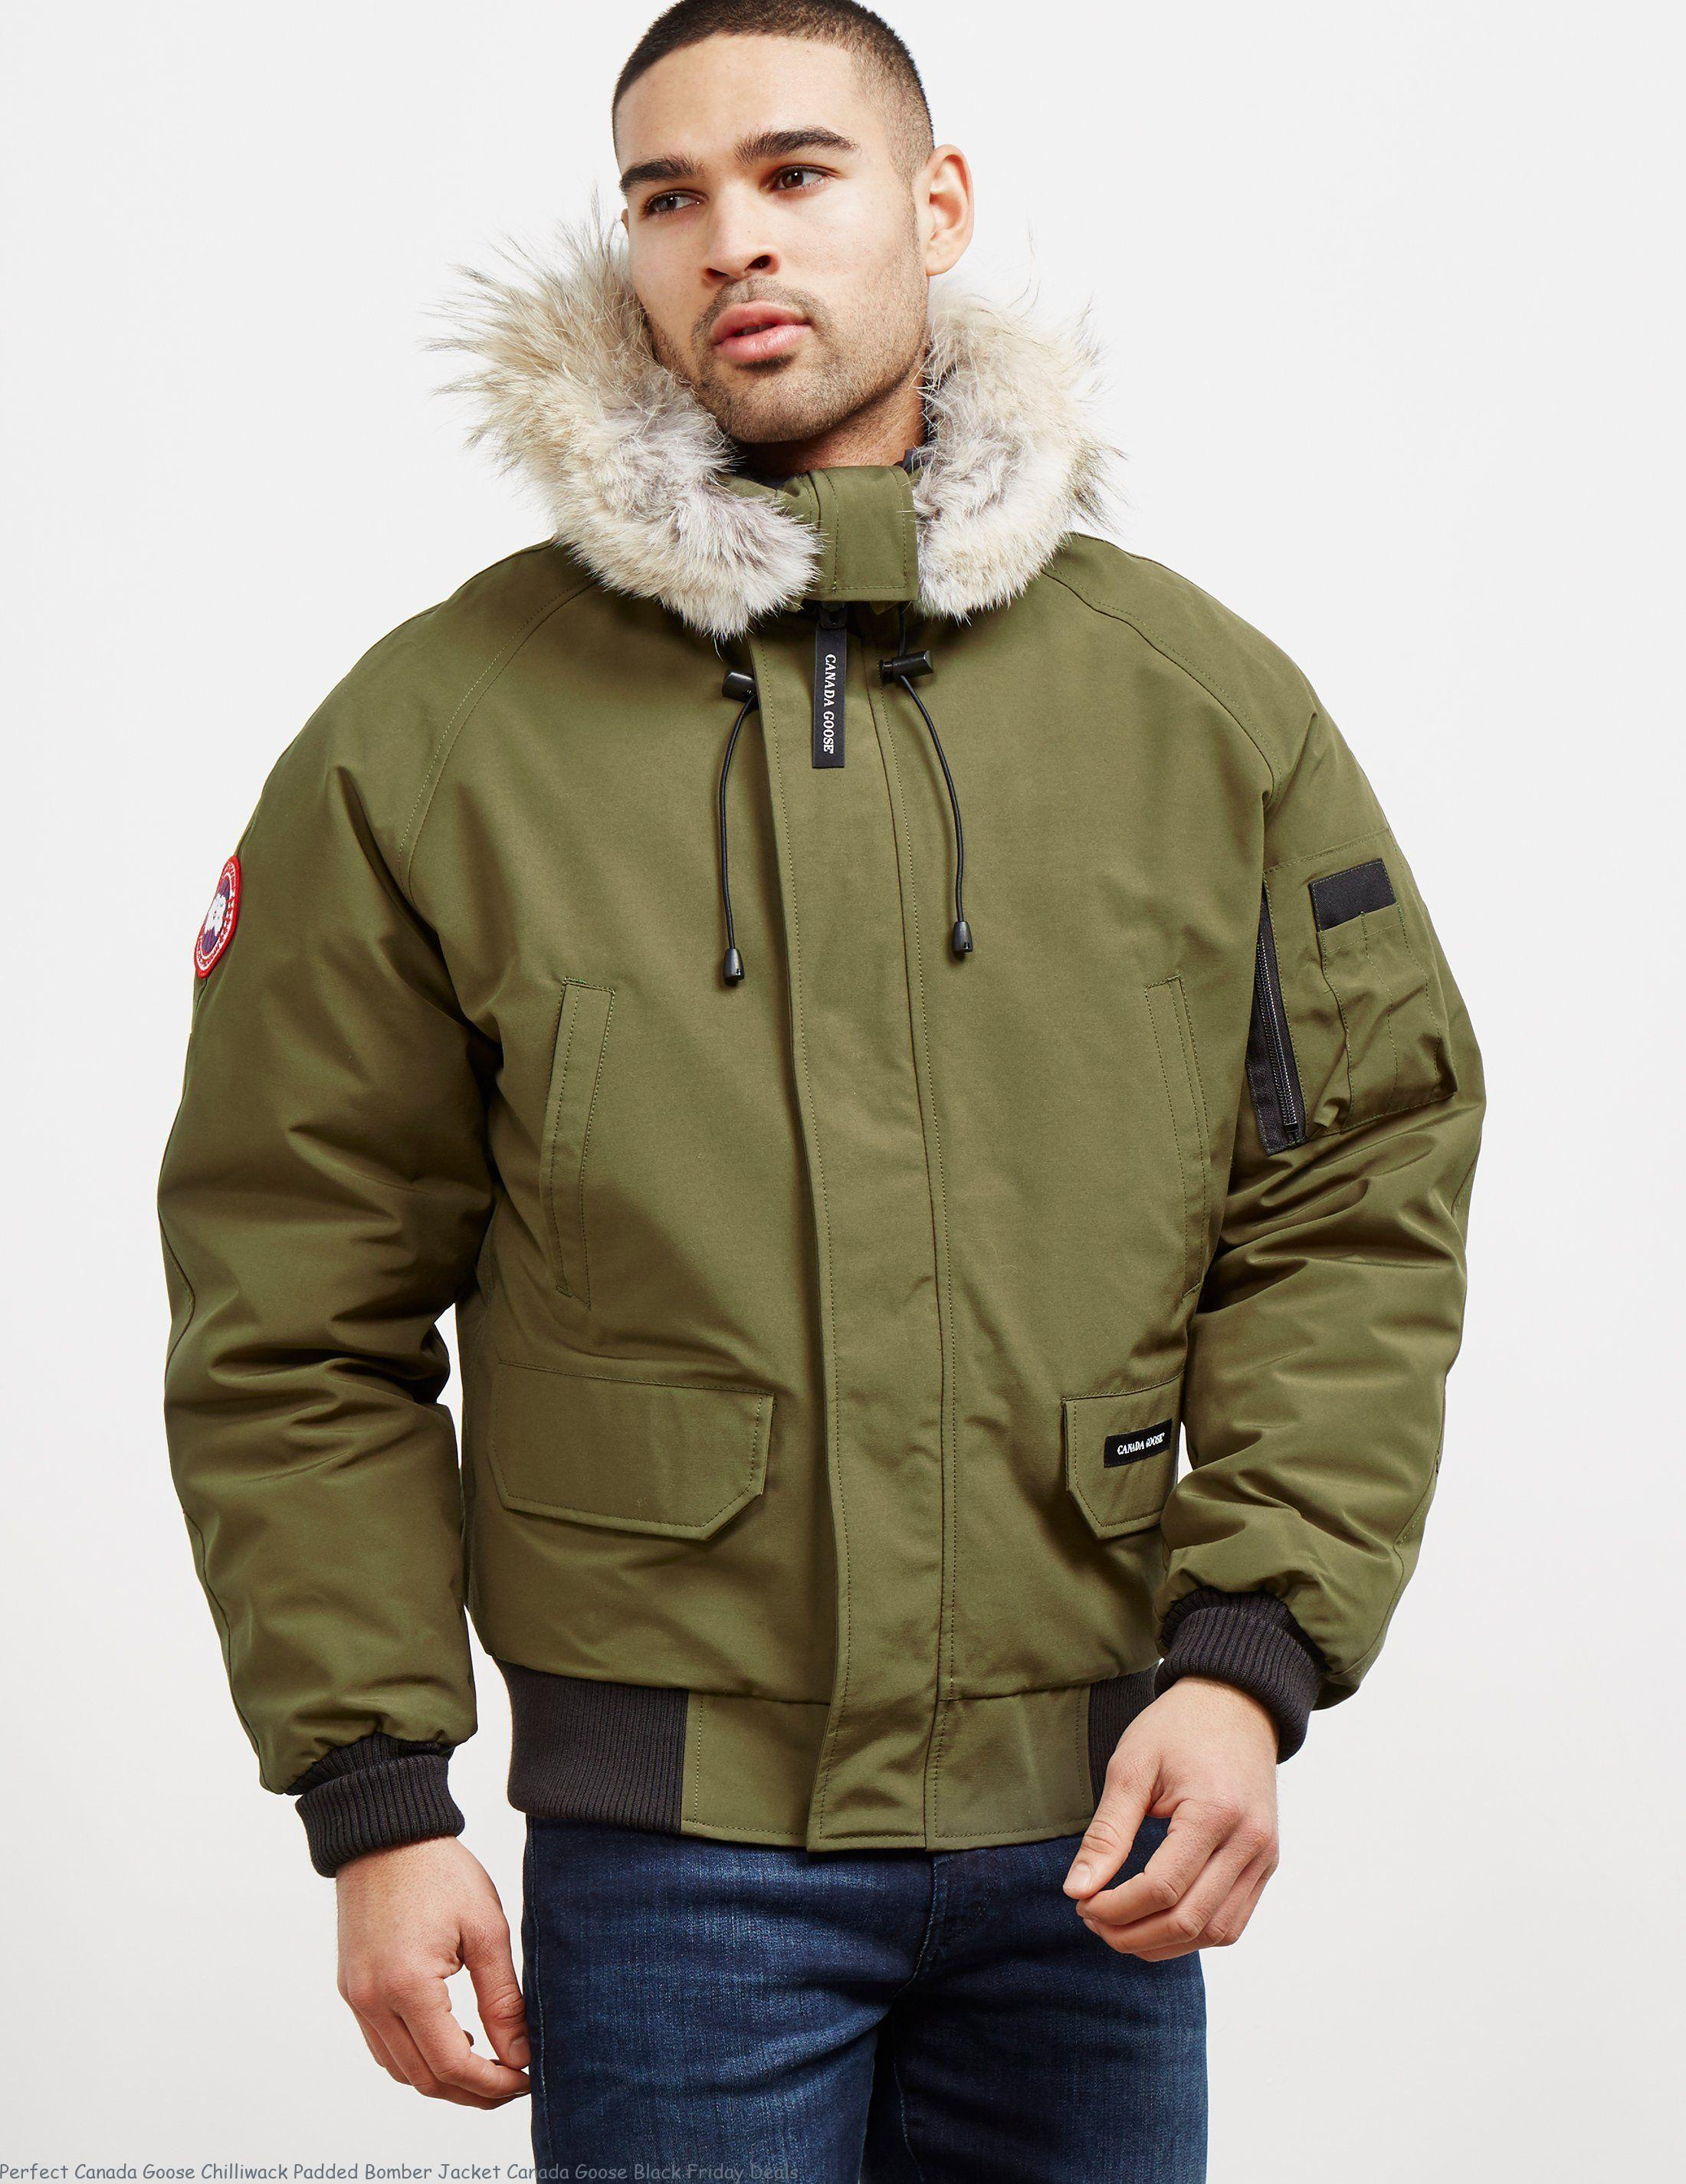 Perfect Canada Goose Chilliwack Padded Bomber Jacket Canada Goose Black Friday Deals Canada Goose Outlet Sale Best Canada Goose Jackets